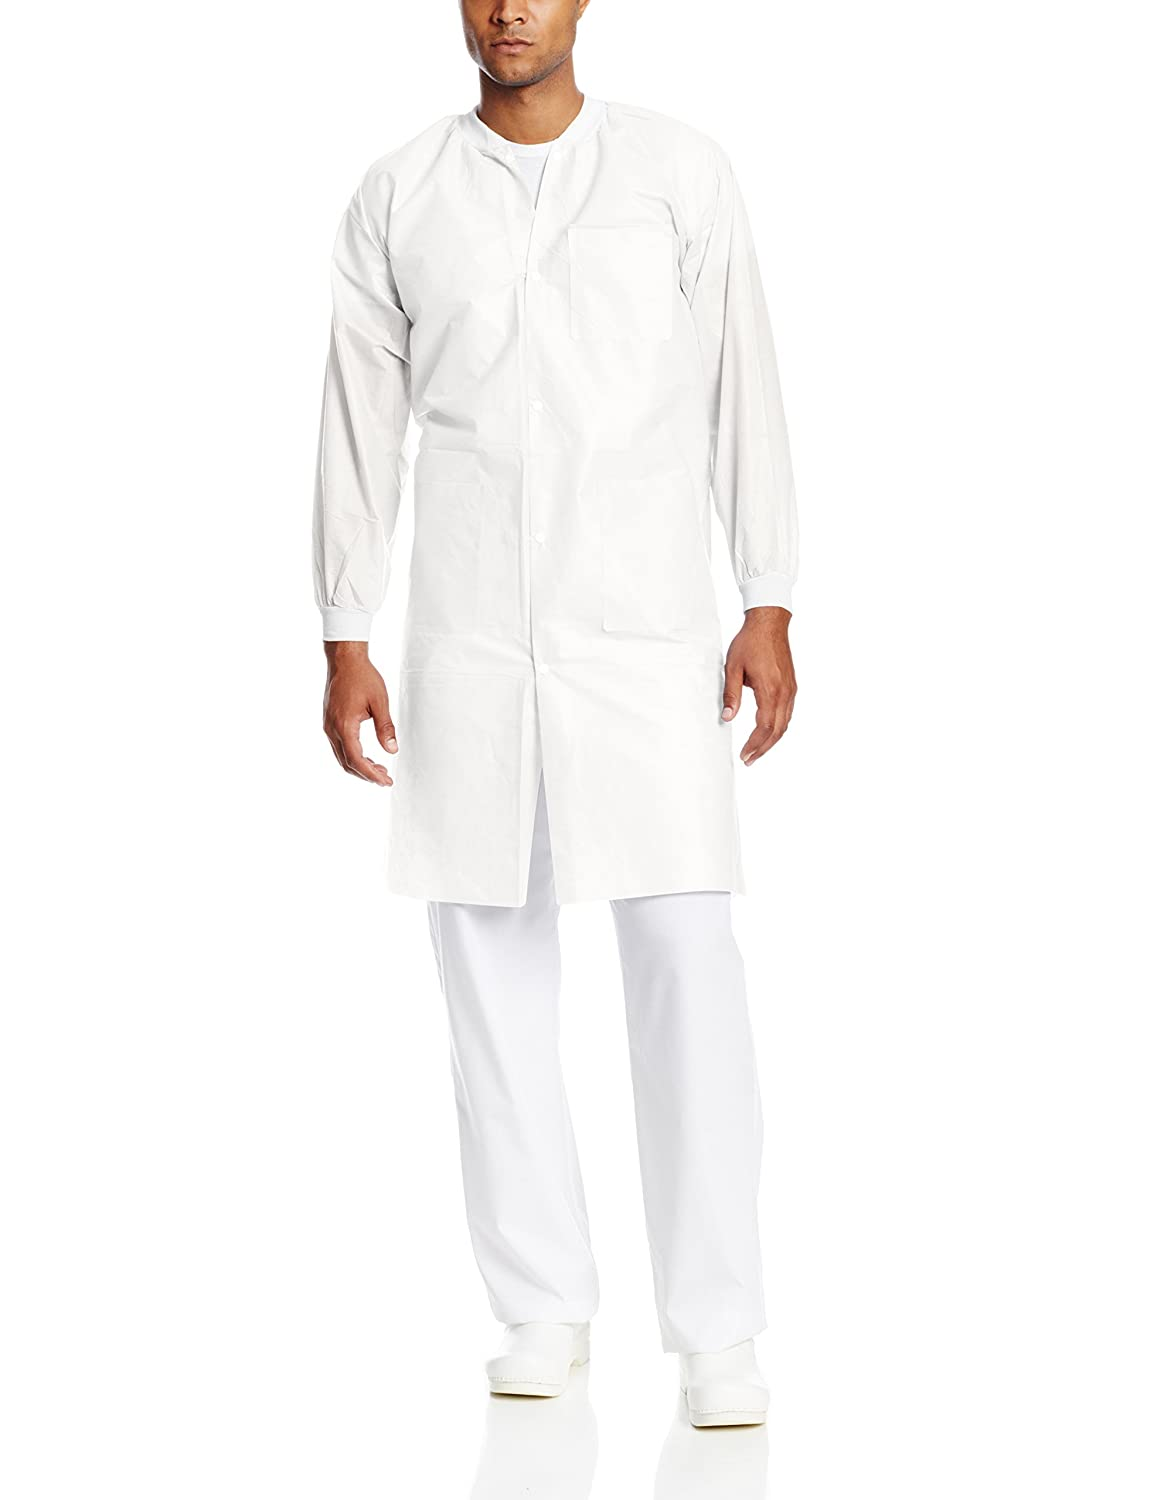 ValuMax 3660WHL-T Traditional Shirt Collar Pack of 10 L White Disposable SMS Knee Length Lab Coat Extra-Safe Wrinkle-Free